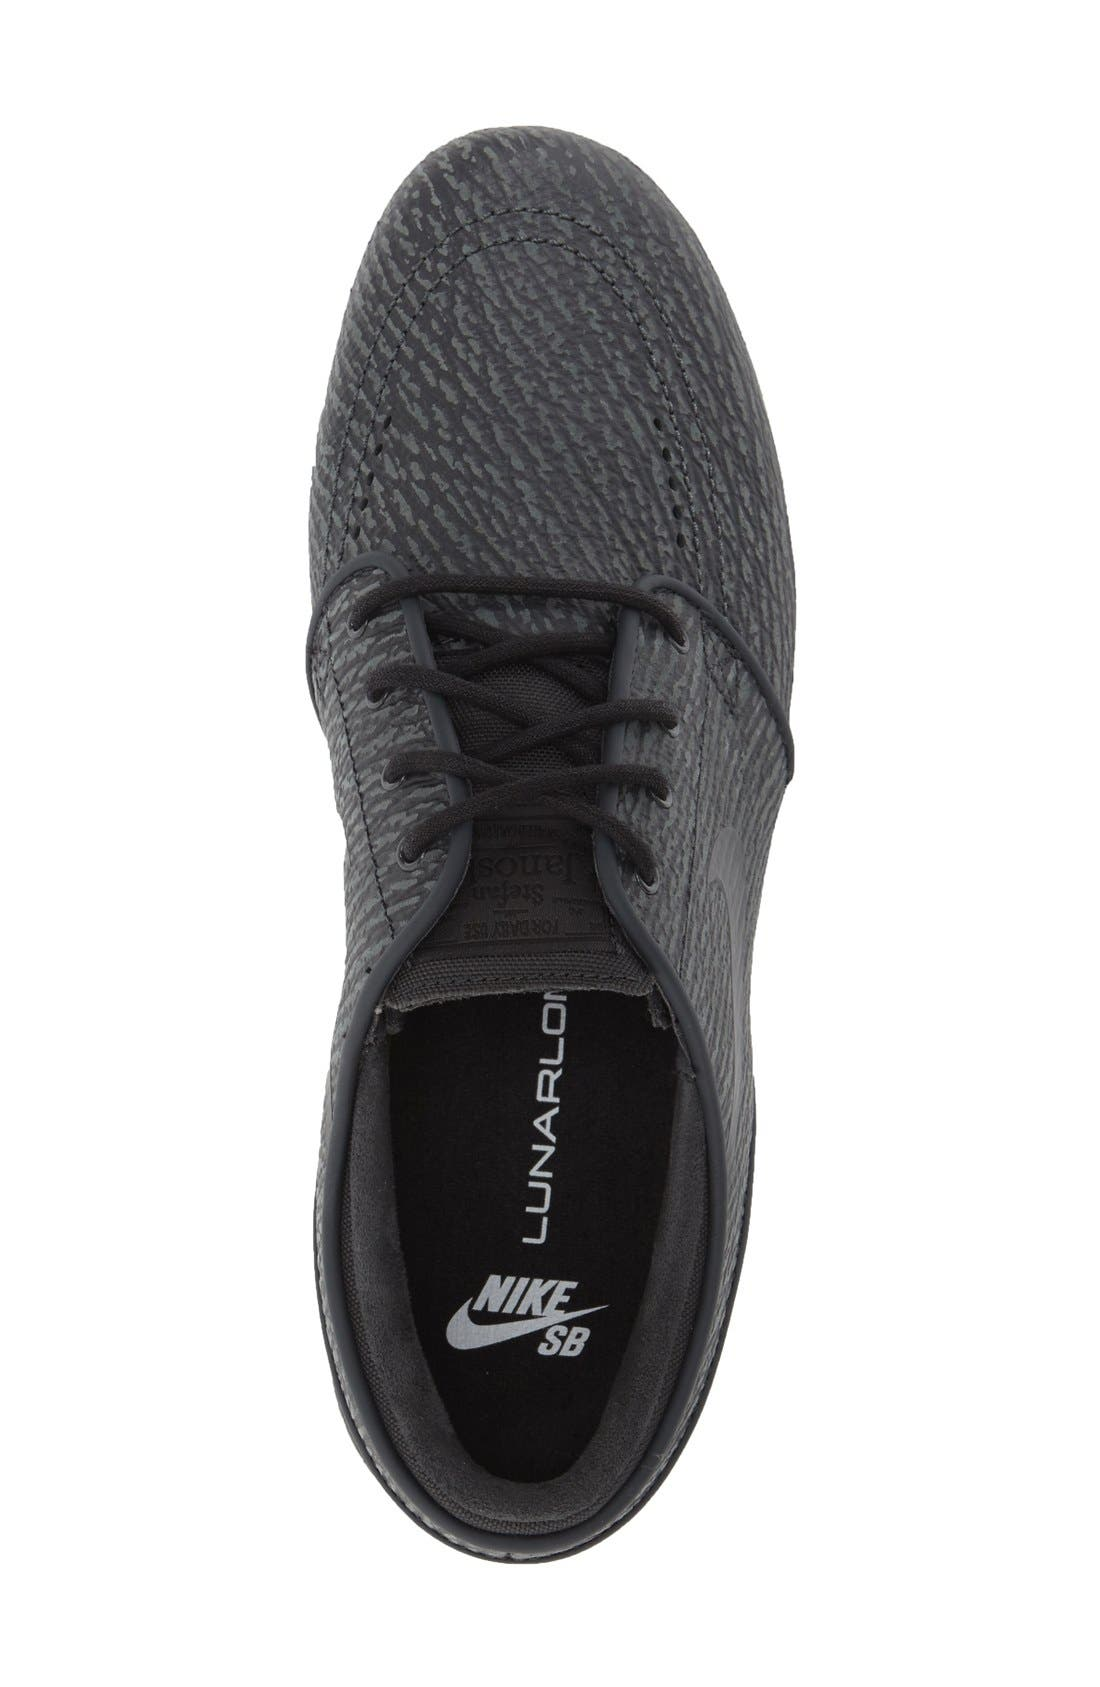 Alternate Image 3  - Nike 'Lunar - Stefan Janoski SB' Skate Shoe (Men)